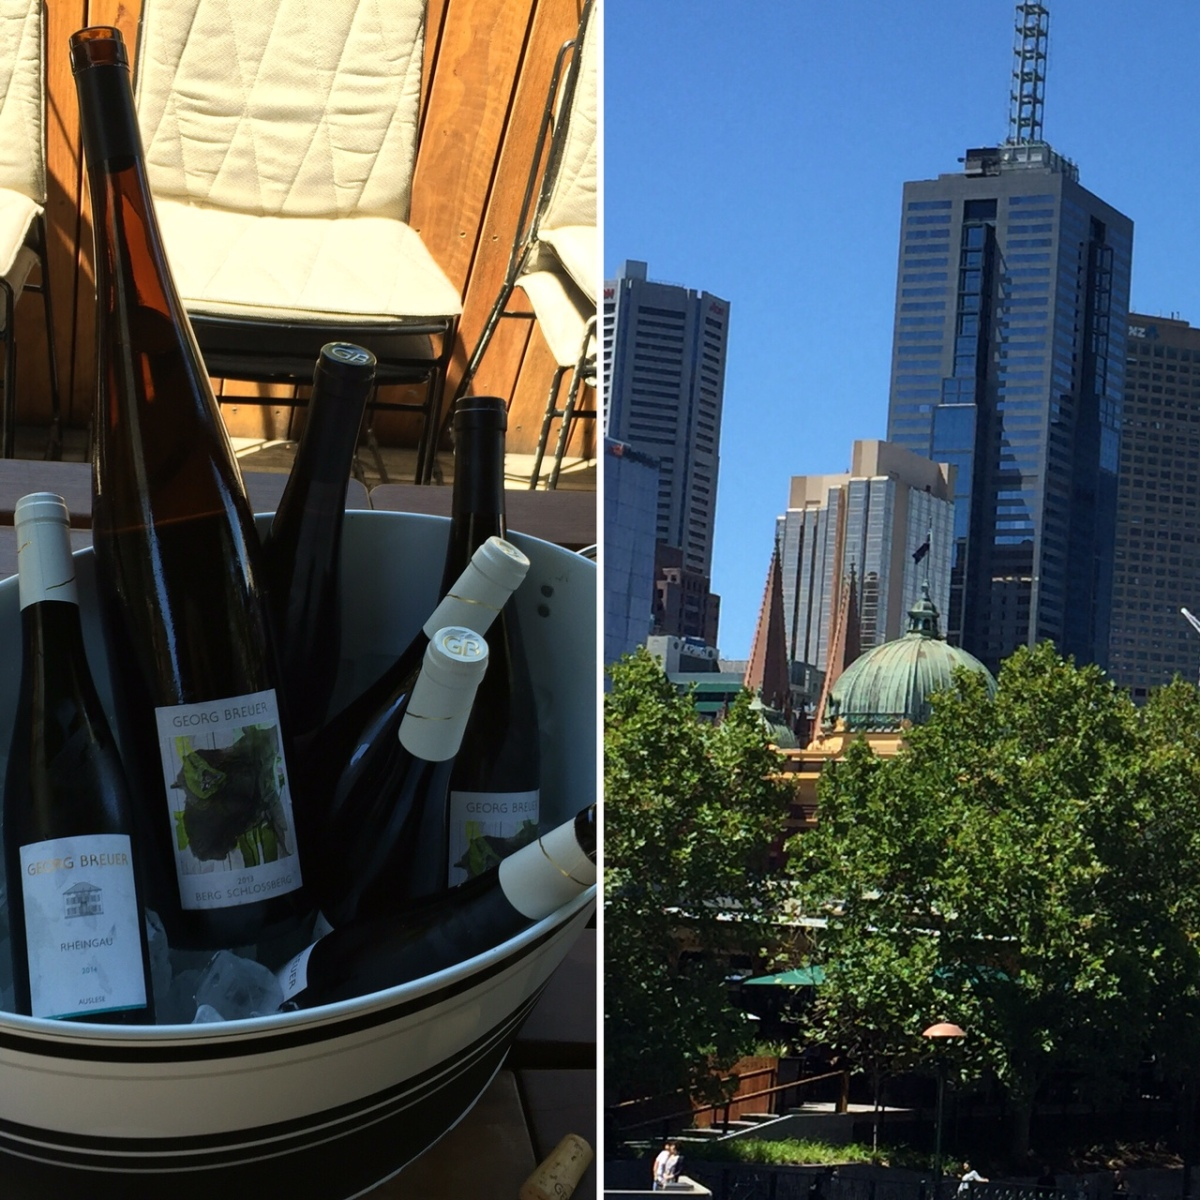 Where the Rhine meets the Yarra - Georg Breuer and CellarHand Wines